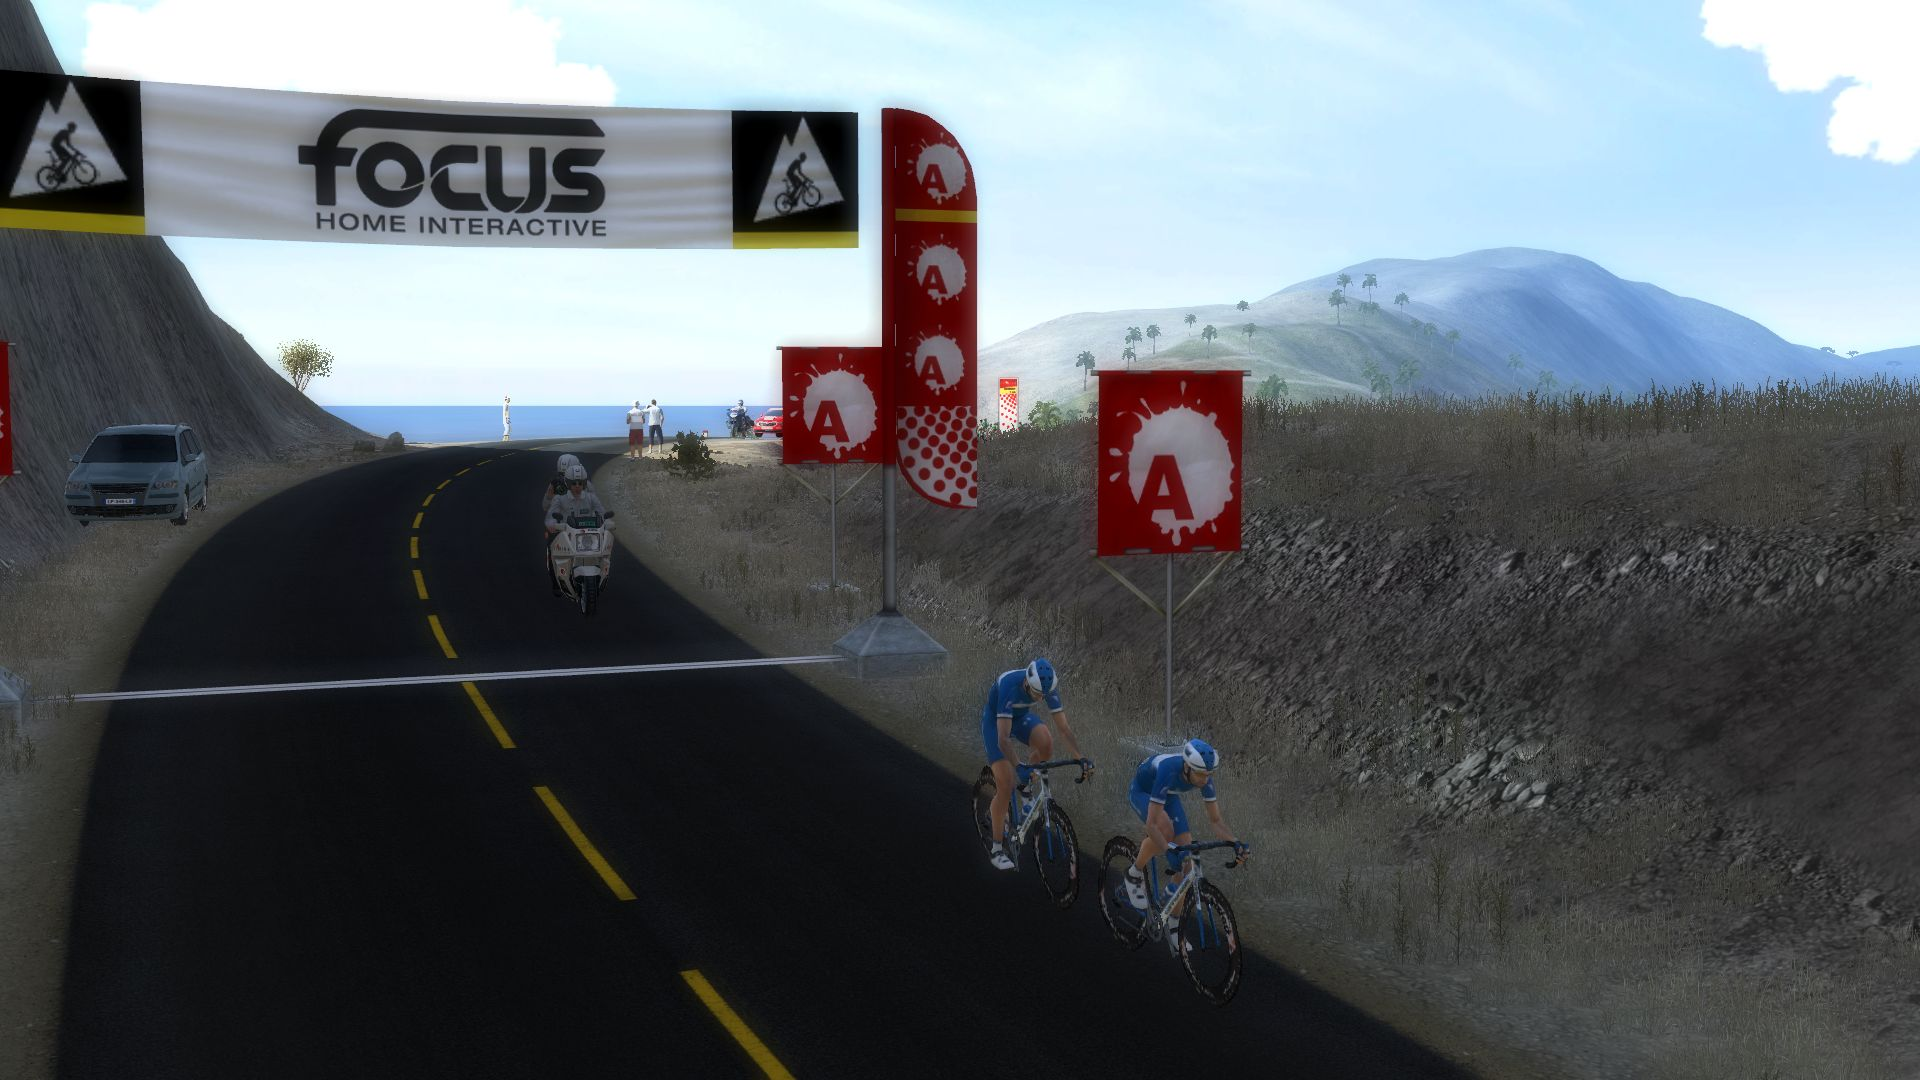 pcmdaily.com/images/mg/2019/Races/C2HC/Eritrea/TOES1%204.jpg